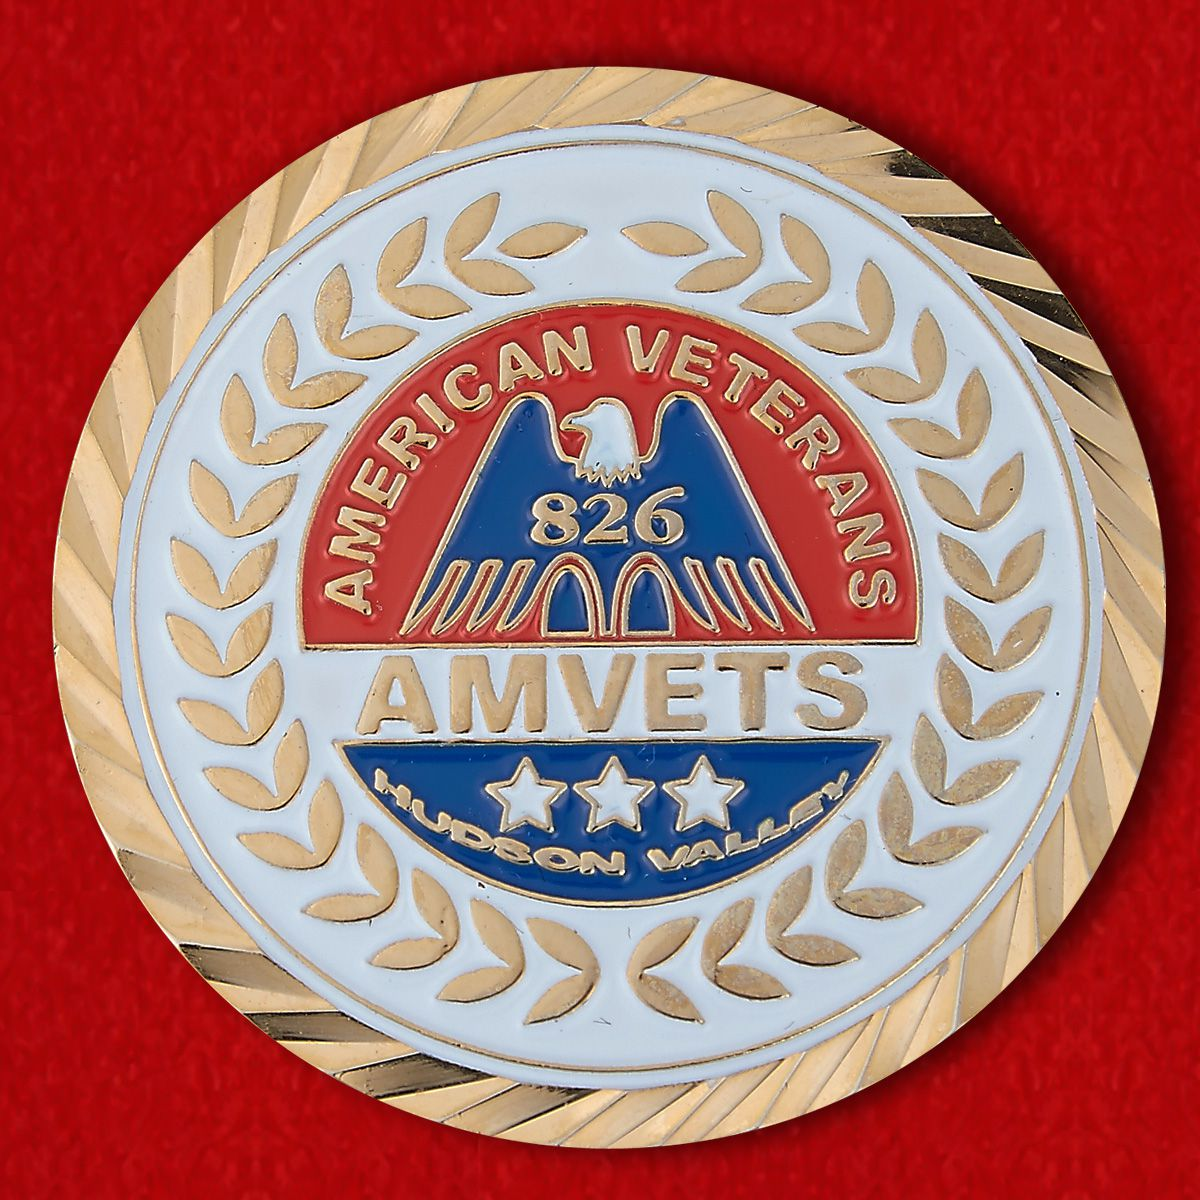 Challenge coin of the Union of American veterans of World War II